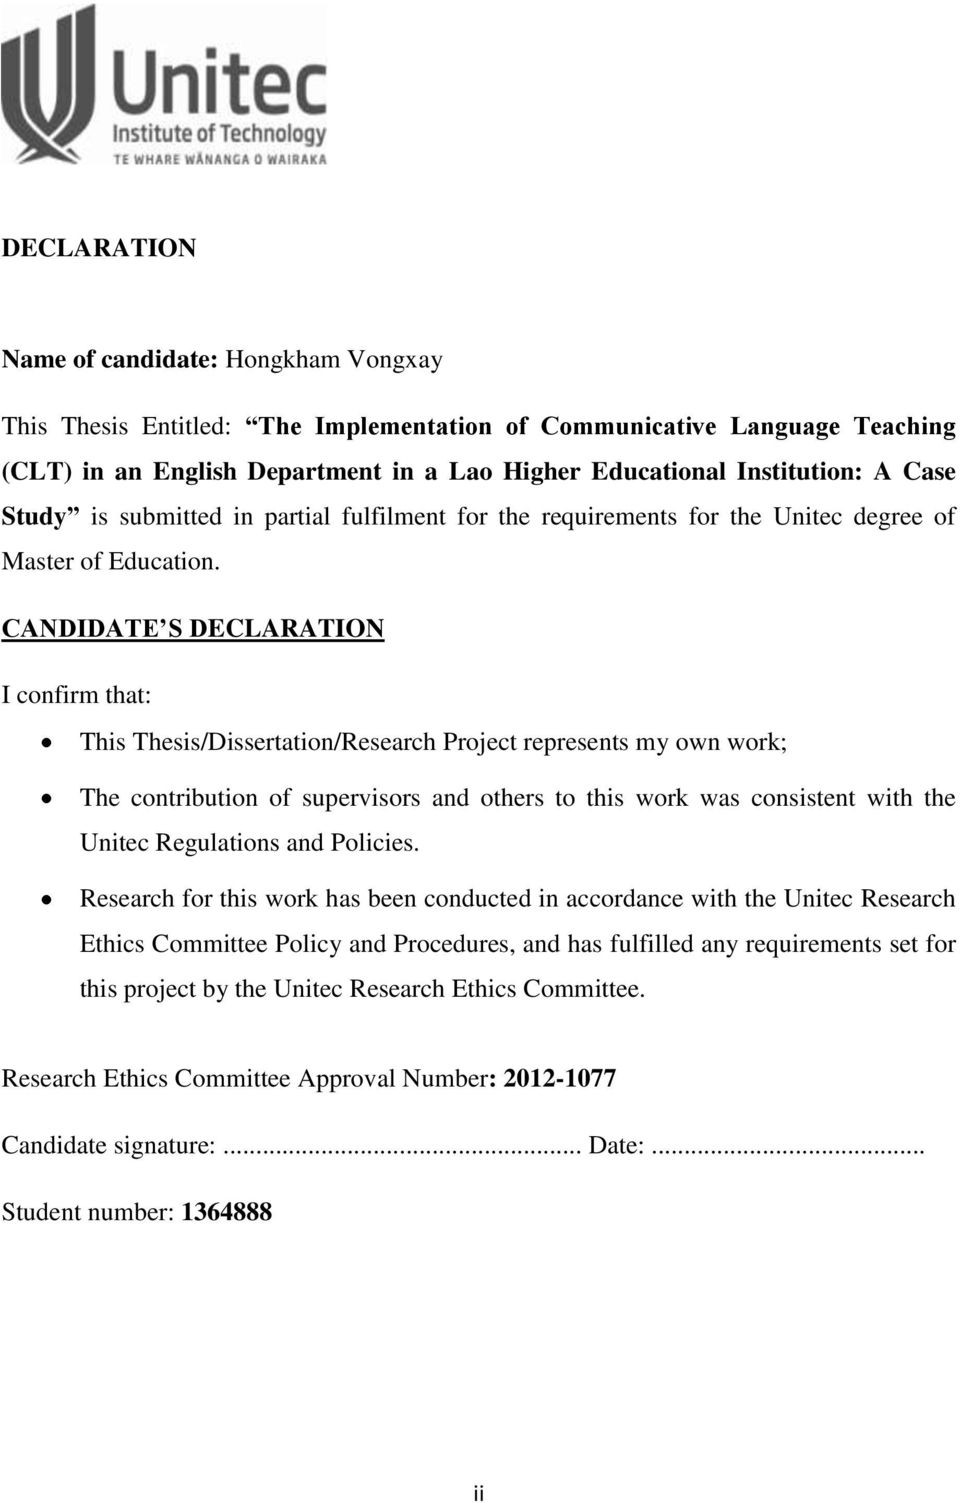 candidate declaration for thesis